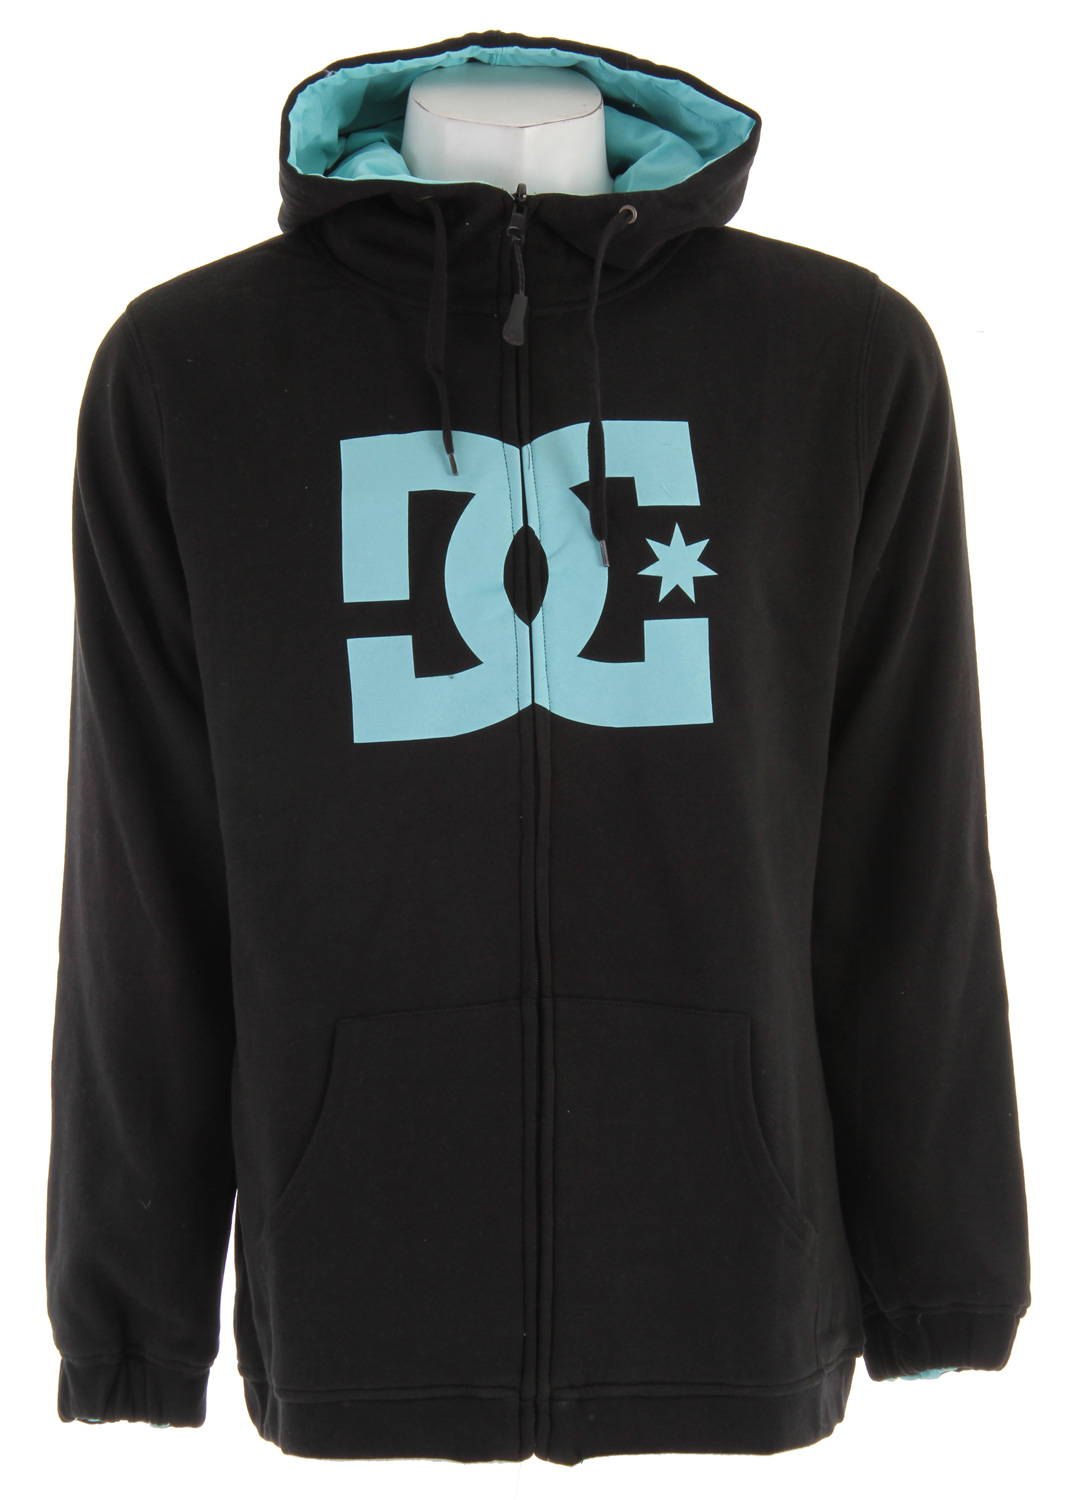 Skateboard Reversible long fit full zip. Water repellent fleece and outerwear logo applique on side A, outerwear fabric shell with logo badge on Side B. Thumb hole cuffs and elastic at hem. 60% cotton/ 40% polyester. - $39.95